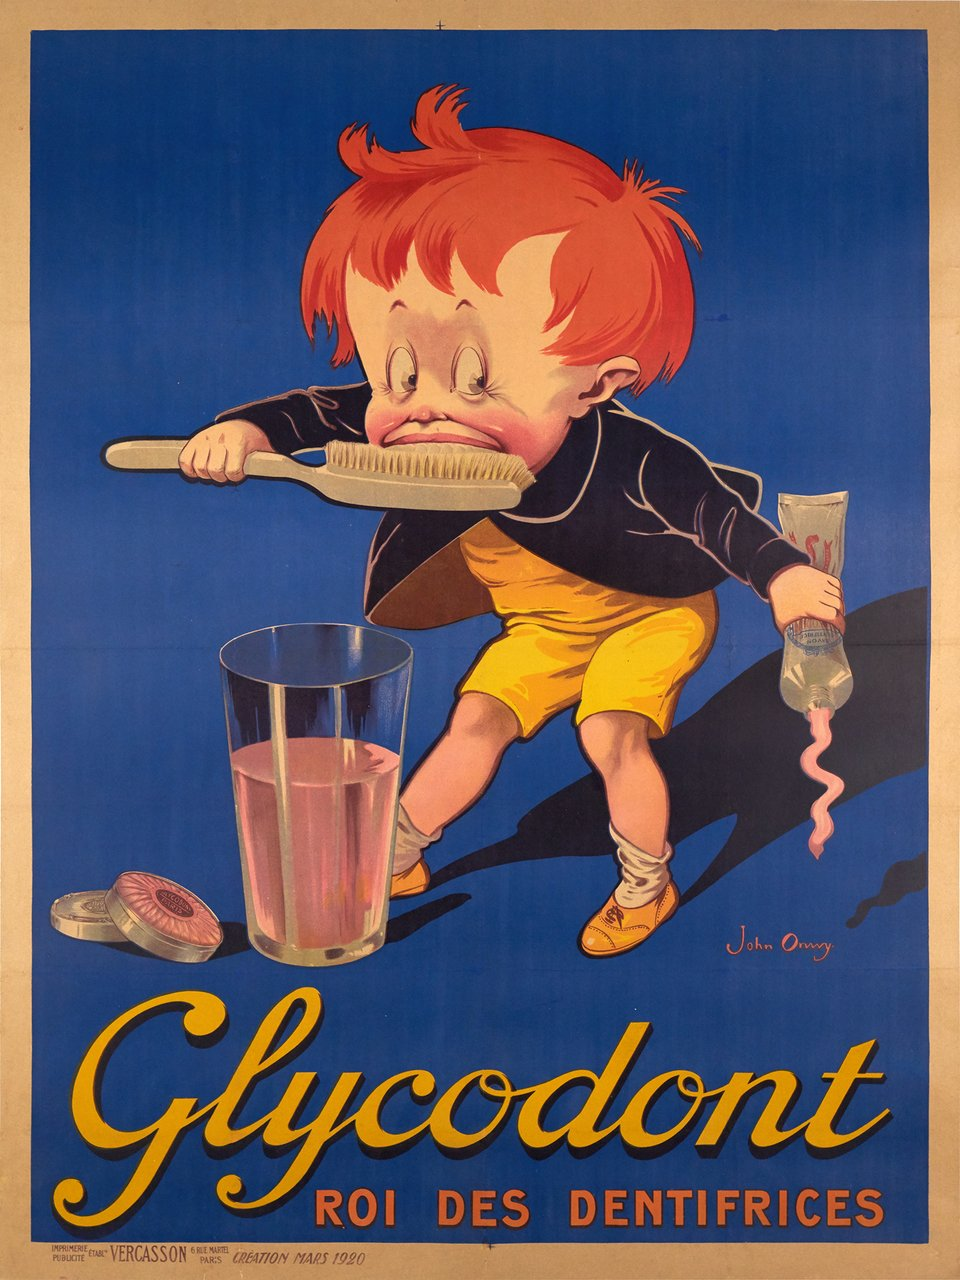 Glycodont, Roi des dentifrices – Vintage poster – John ONWY – 1920